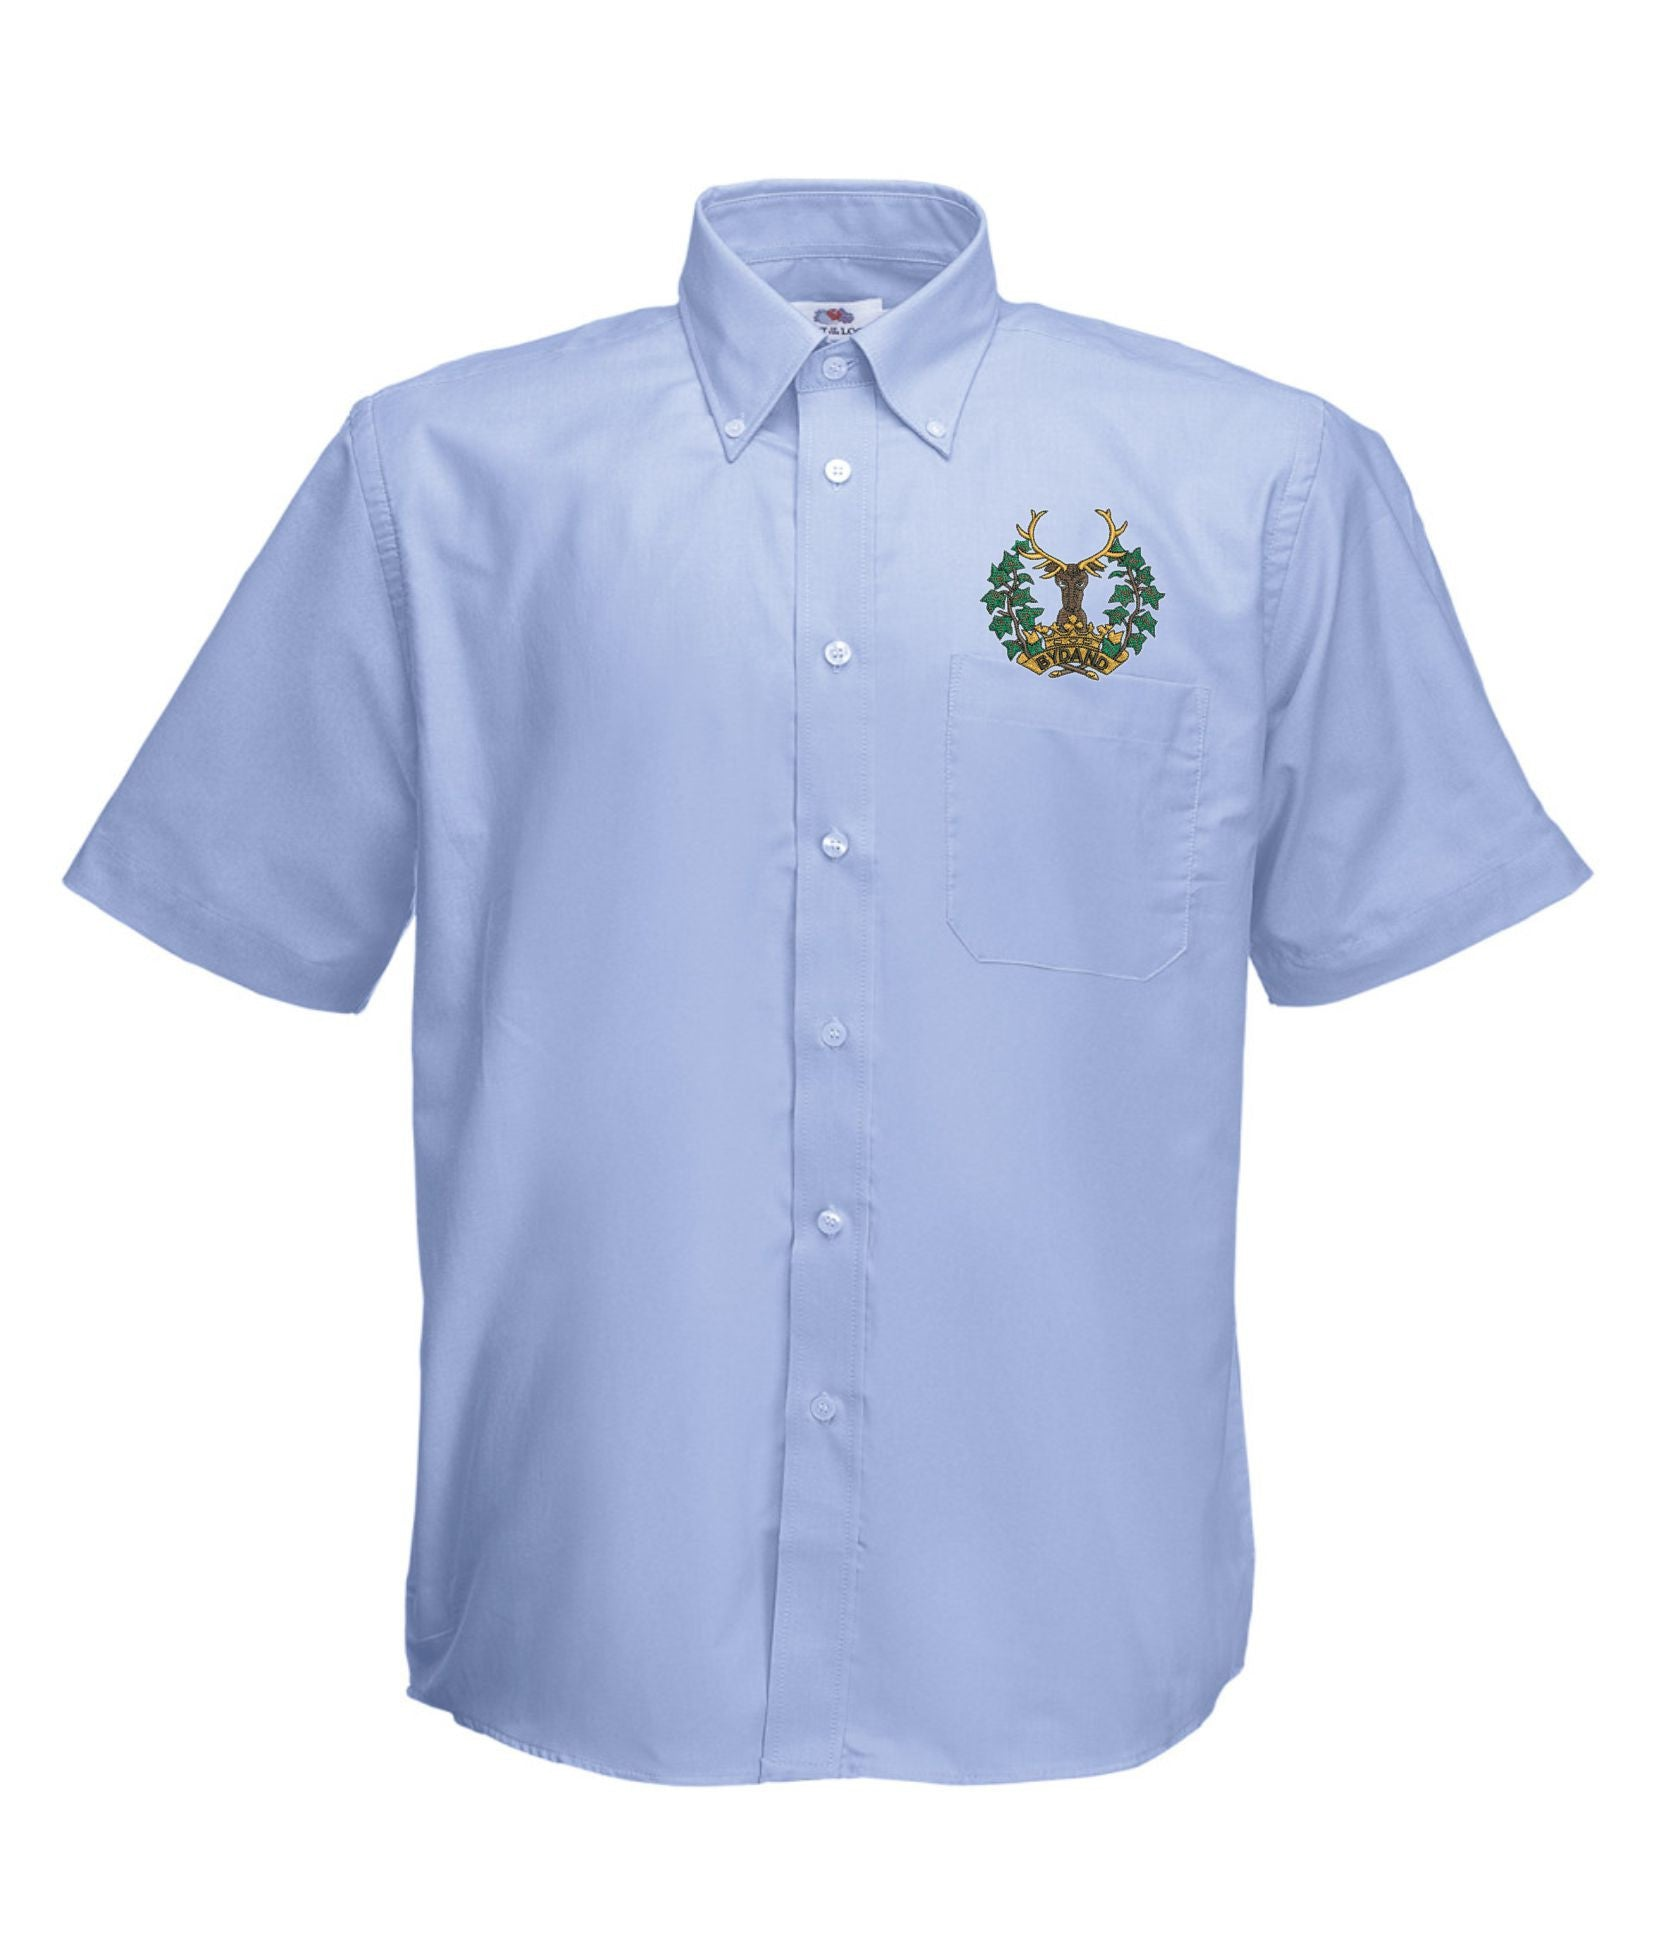 Gordon Highlanders Shirts